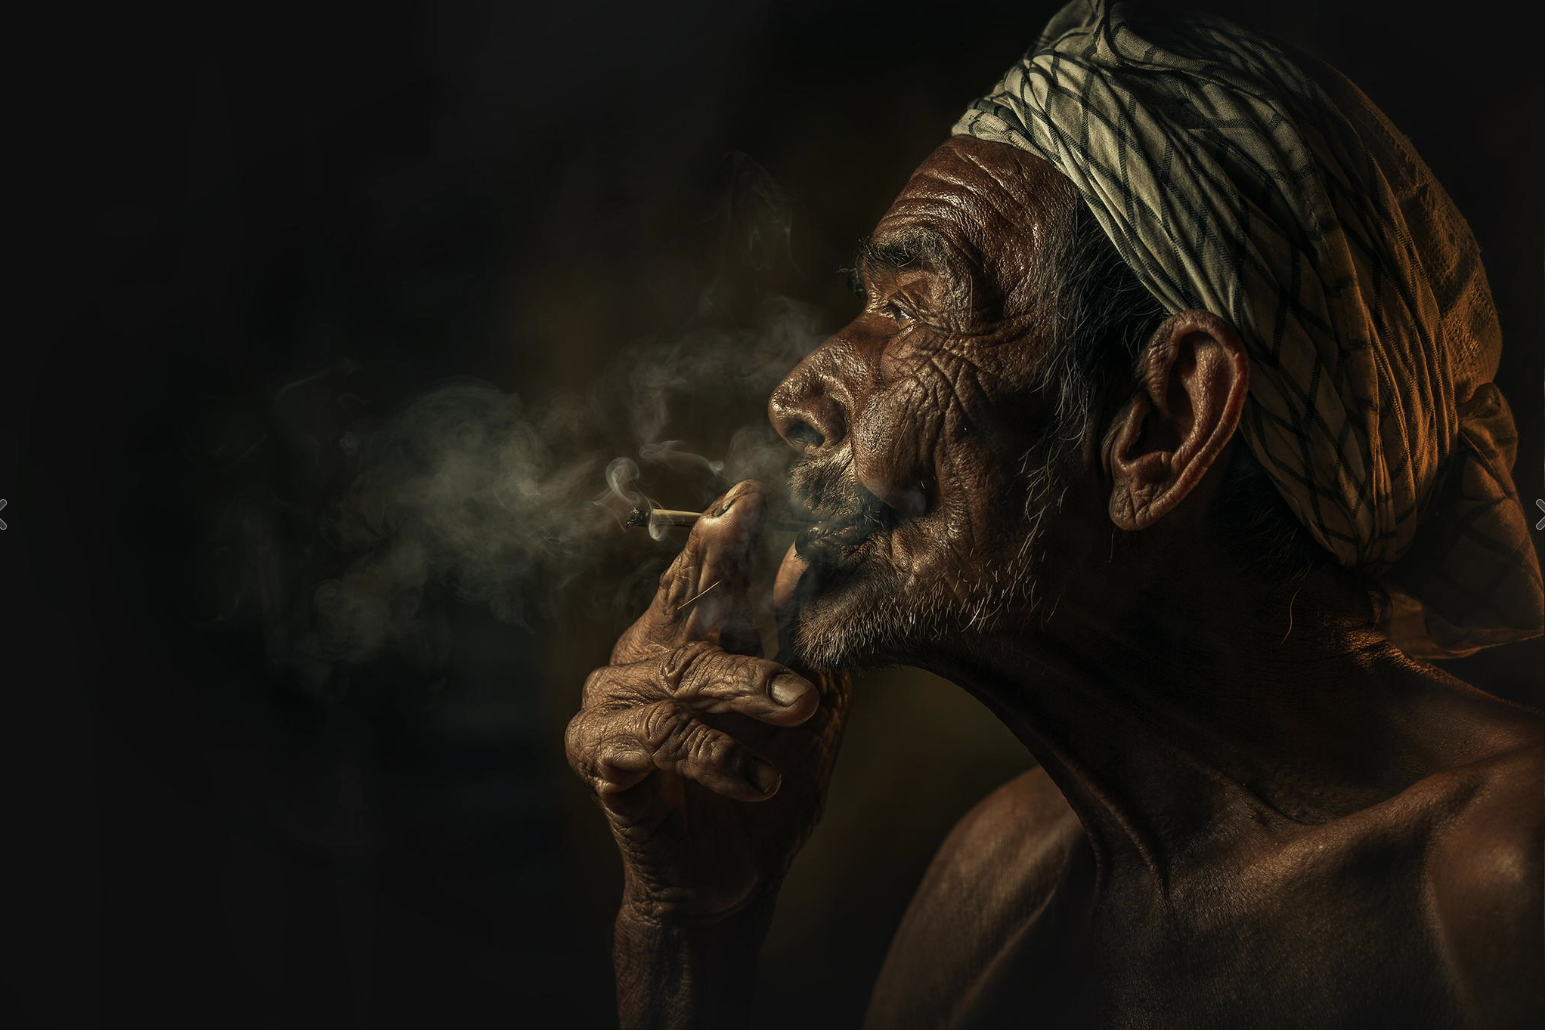 Abe Less – SMOKER-POKYA – Malaisian photographer